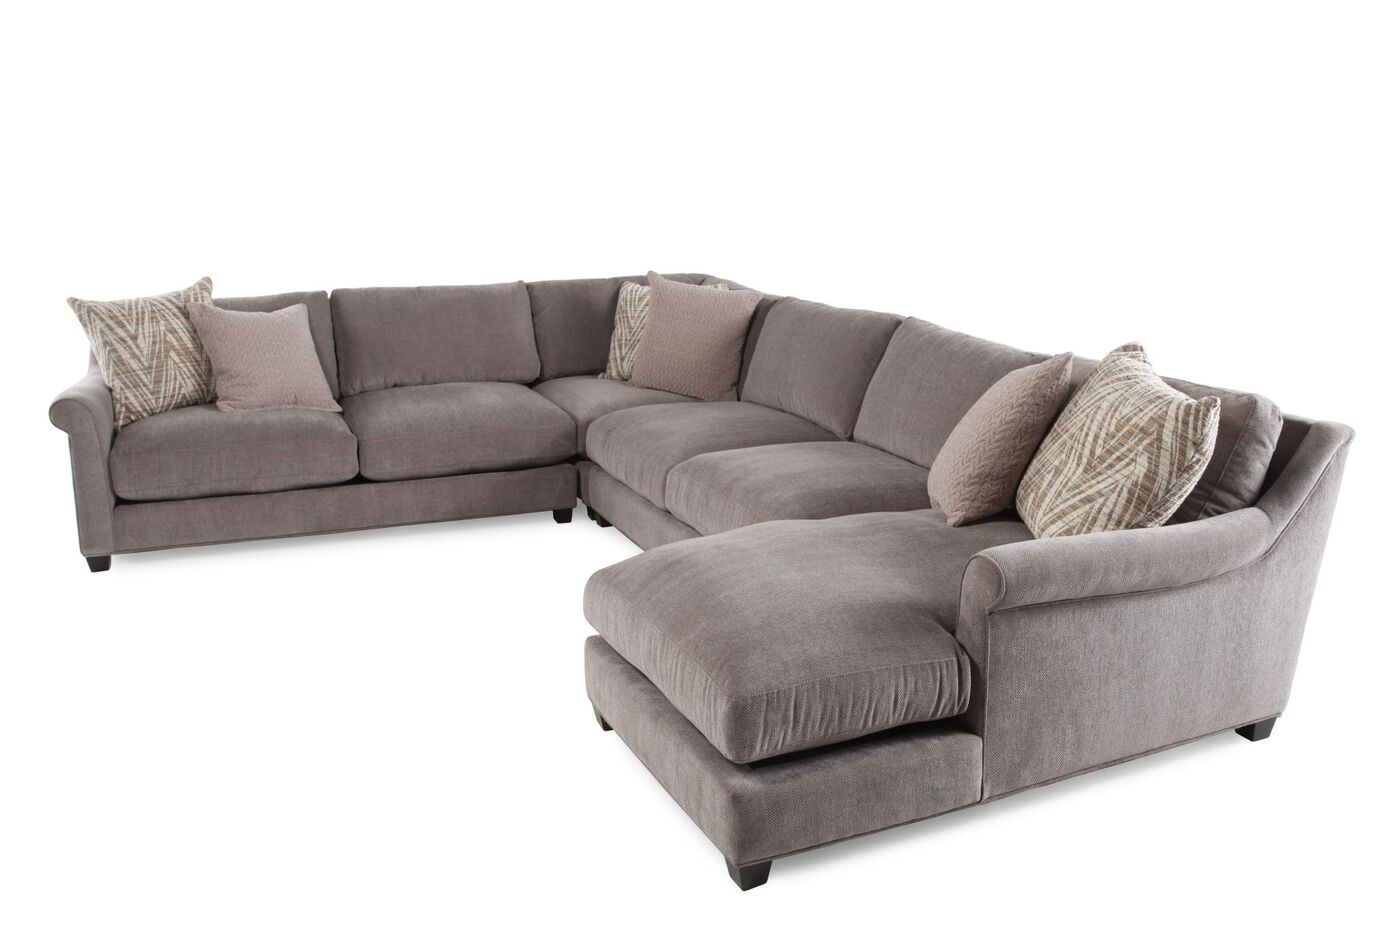 Four piece microfiber sectional in milk chocolate mathis for 4 piece recliner sectional sofa